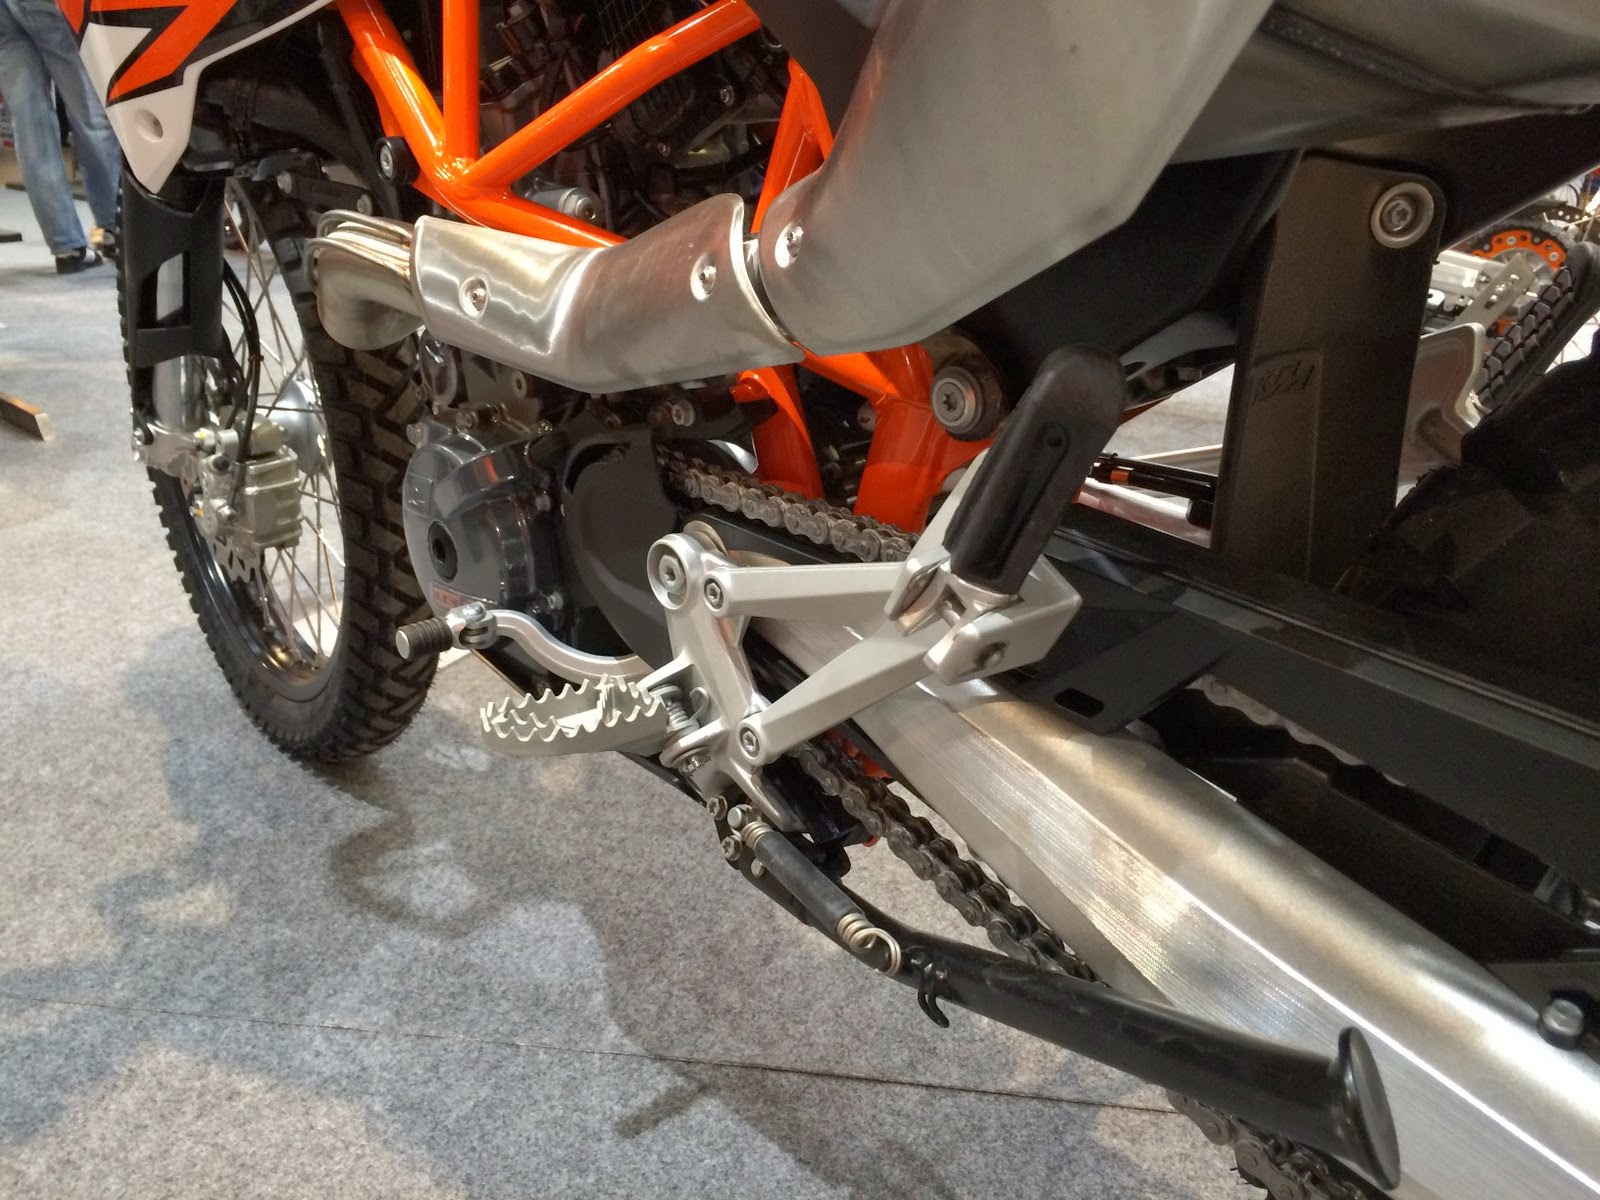 KTM 690 Enduro R 2014 detail